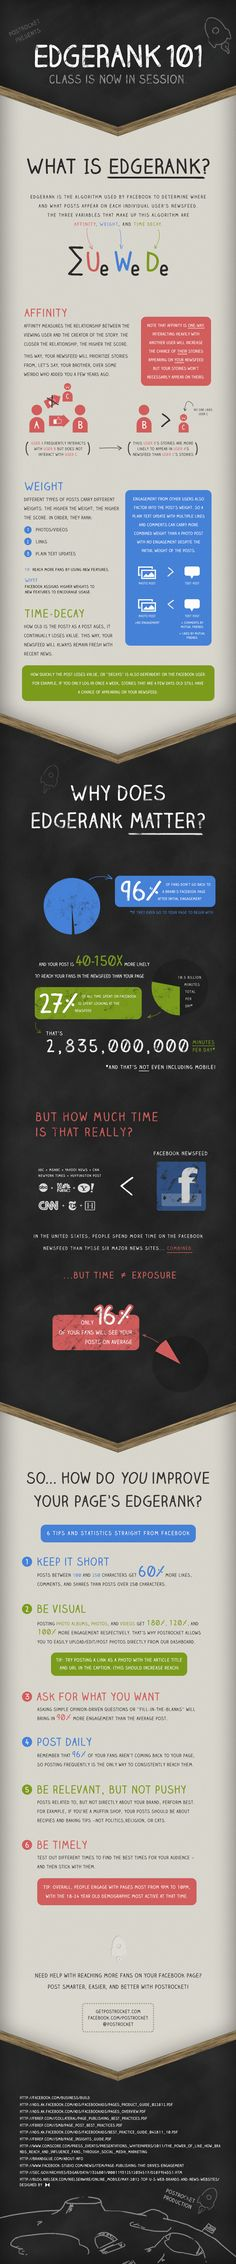 [INFOGRAPHIC] Facebook EdgeRank 101 – Class is Now in Session  http://blog.getpostrocket.com/2012/09/infographic-facebook-edgerank-101-class-is-now-in-session/